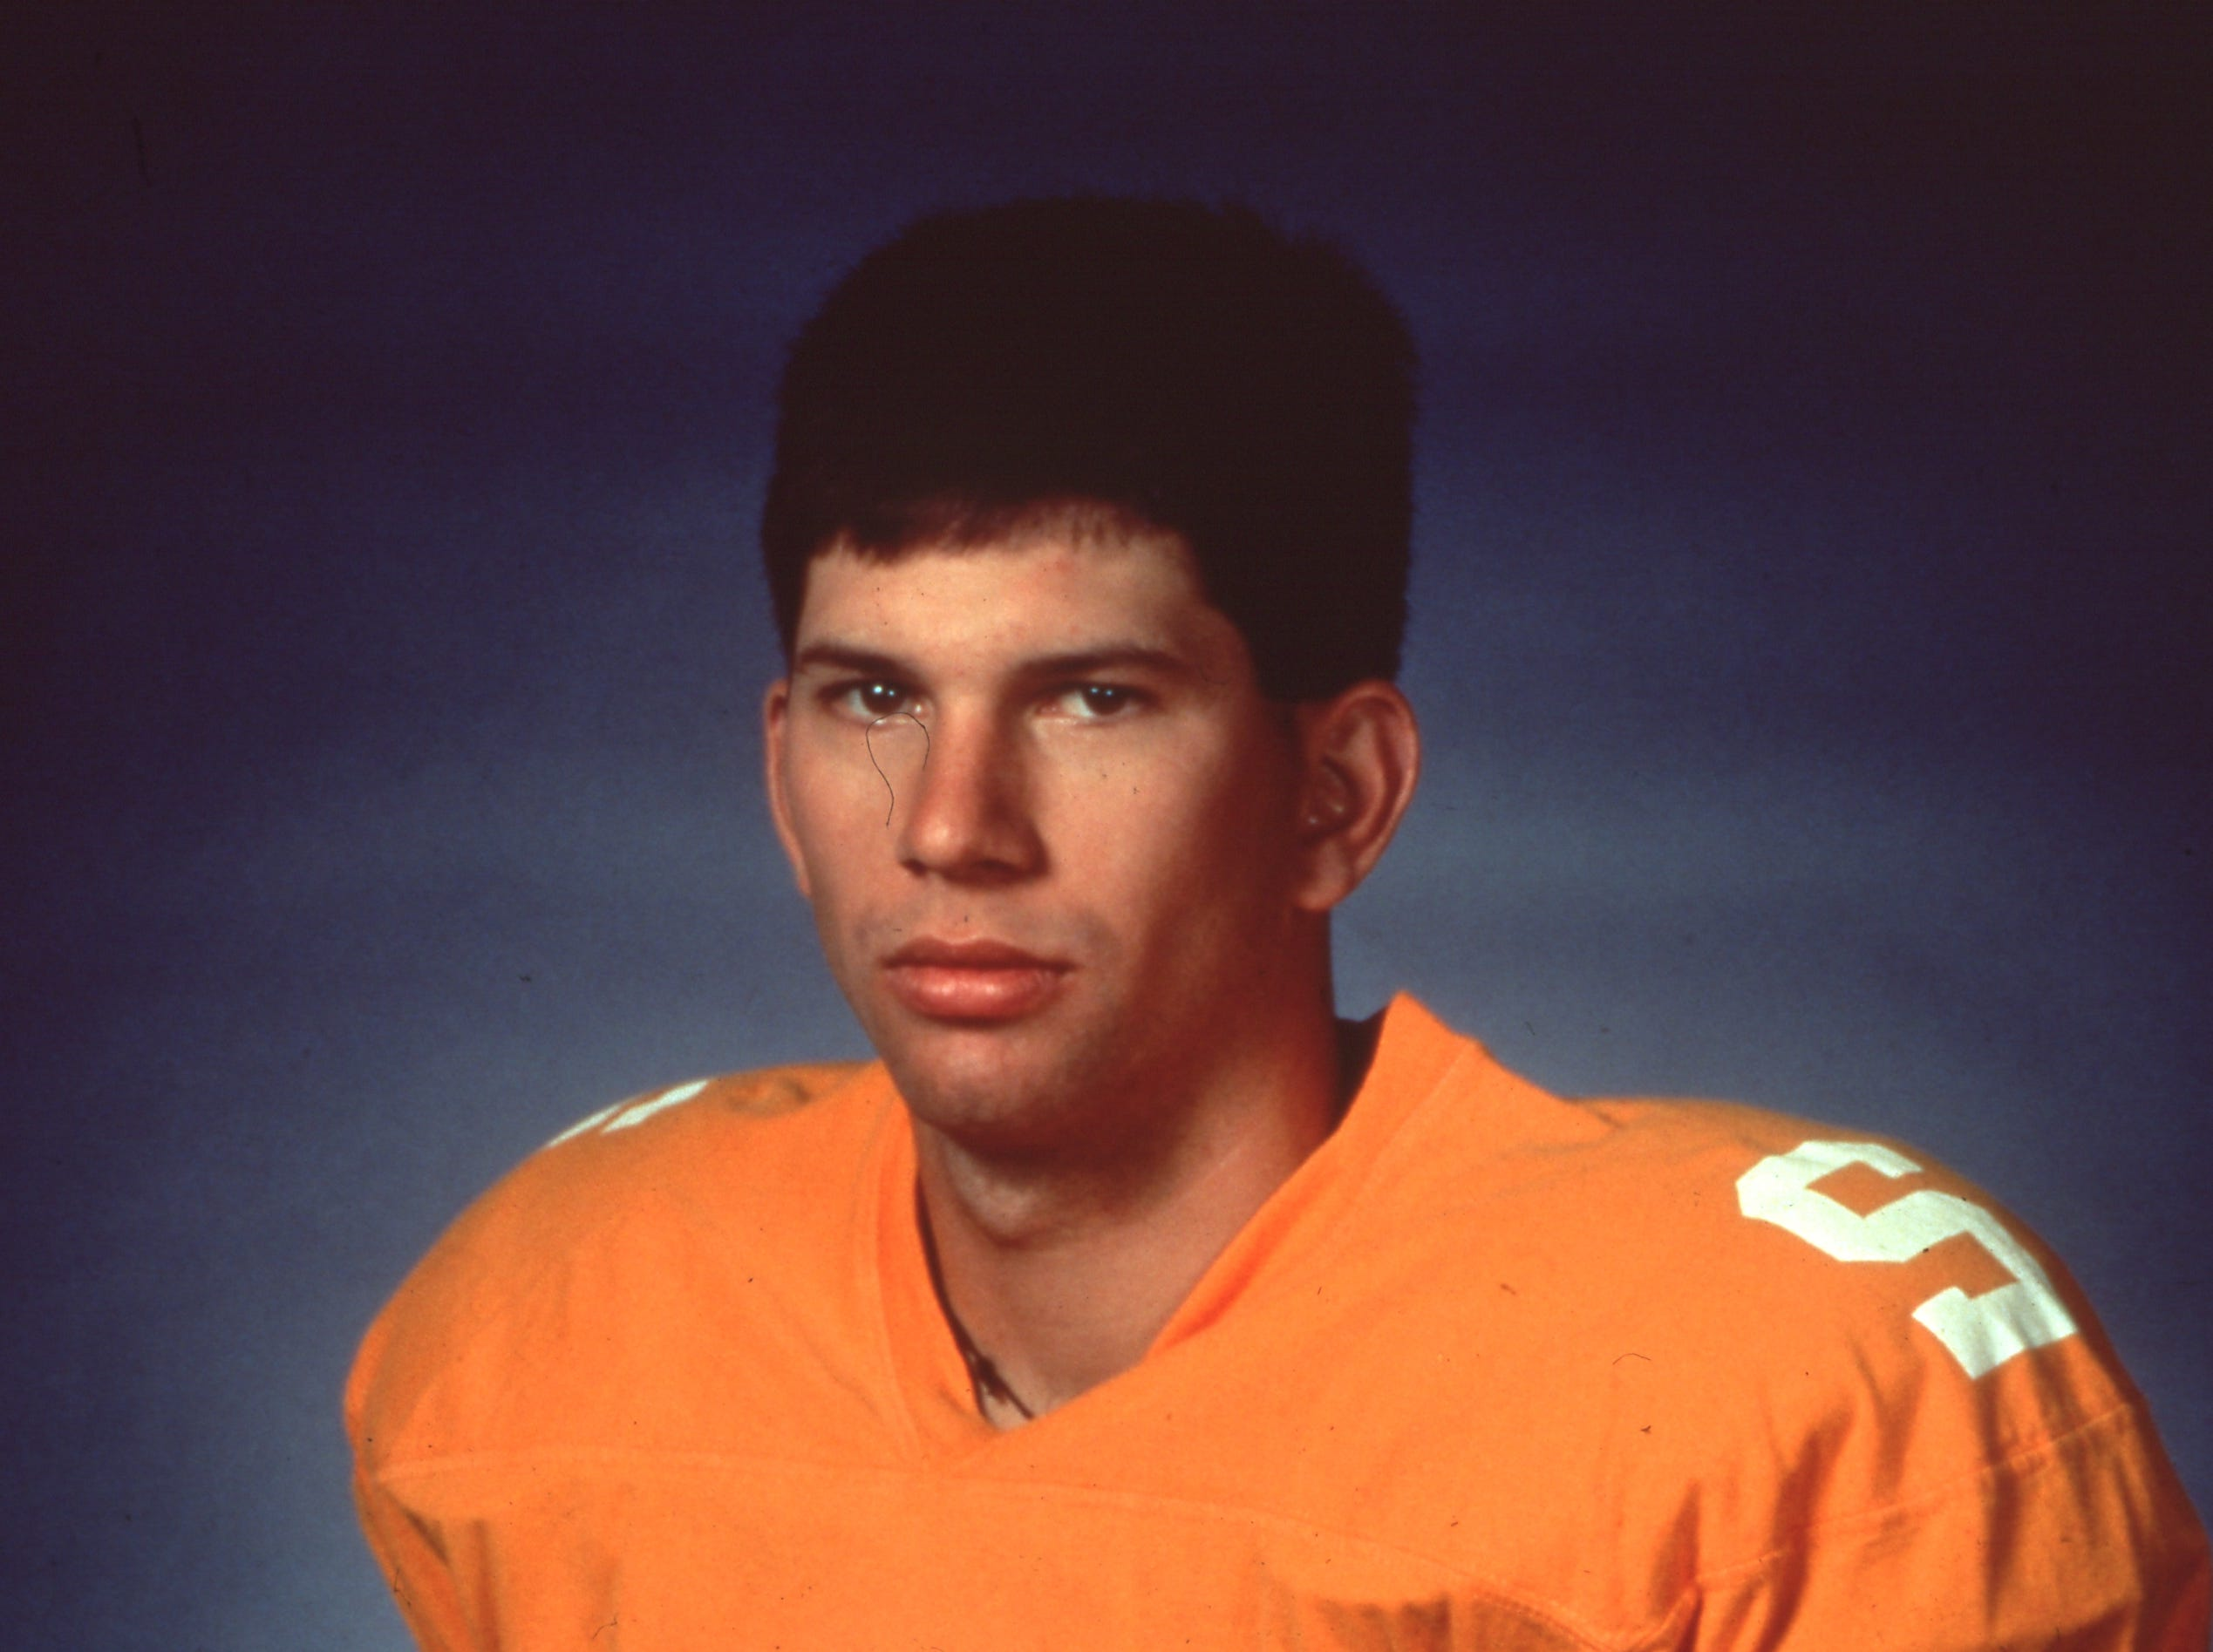 Tennessee quarterback Todd Helton as seen on August 9, 1996.